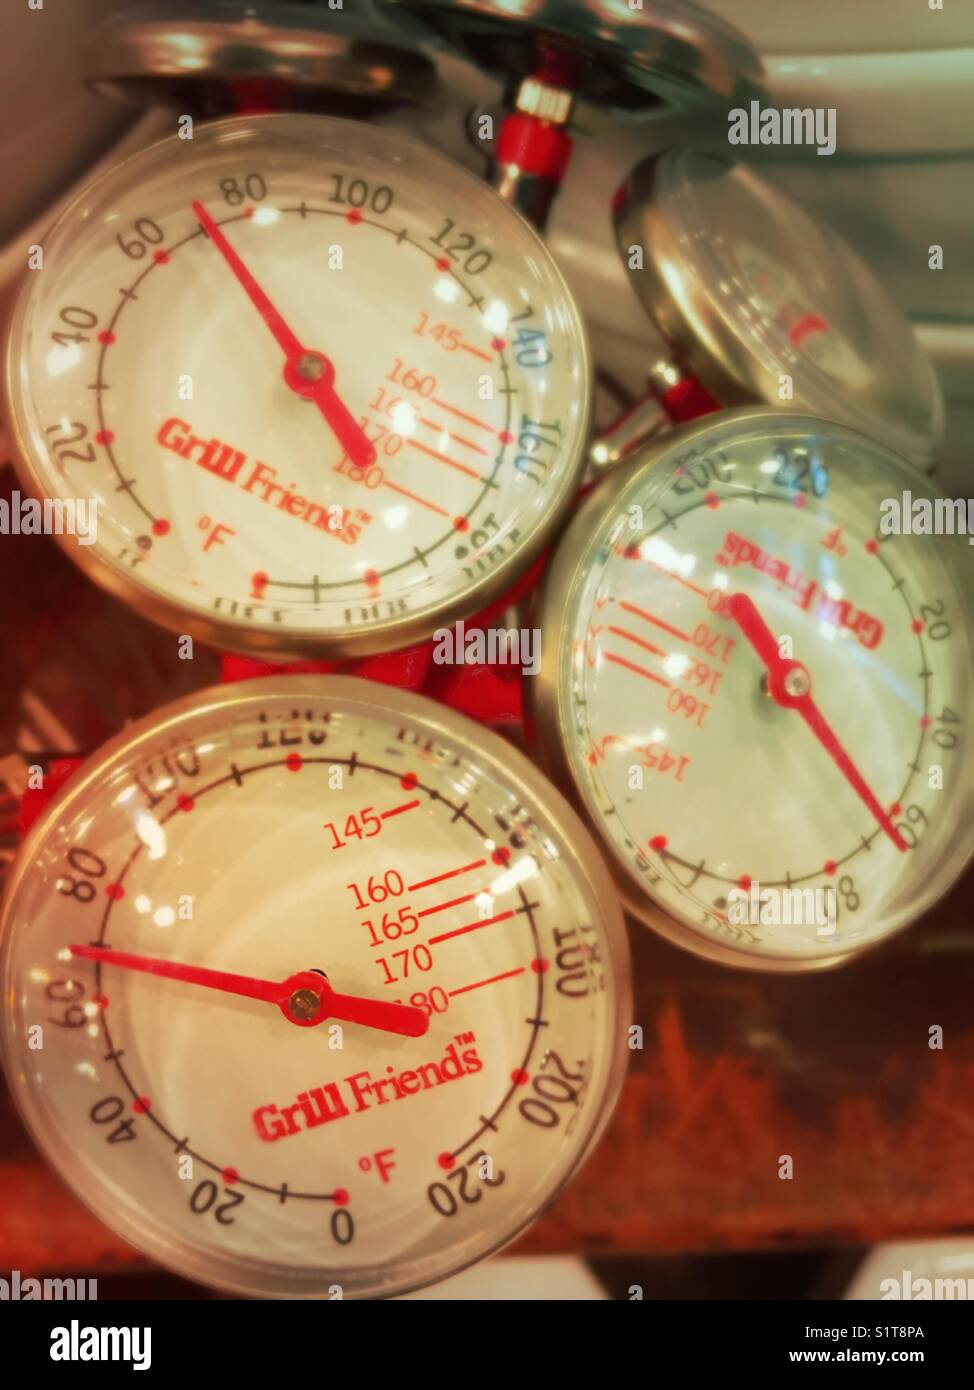 Display of meat thermometers in culinary store, USA - Stock Image